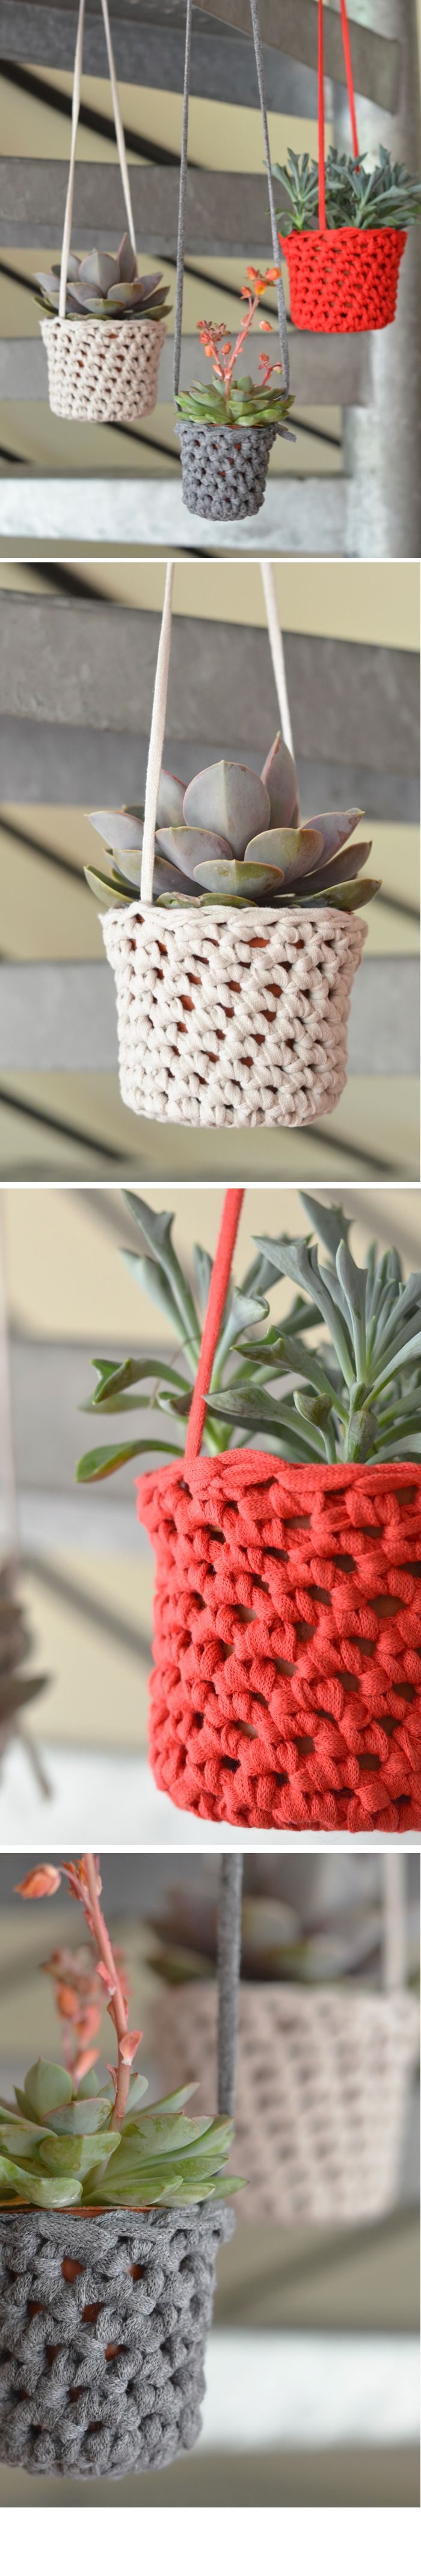 Crochet Hanging Pot